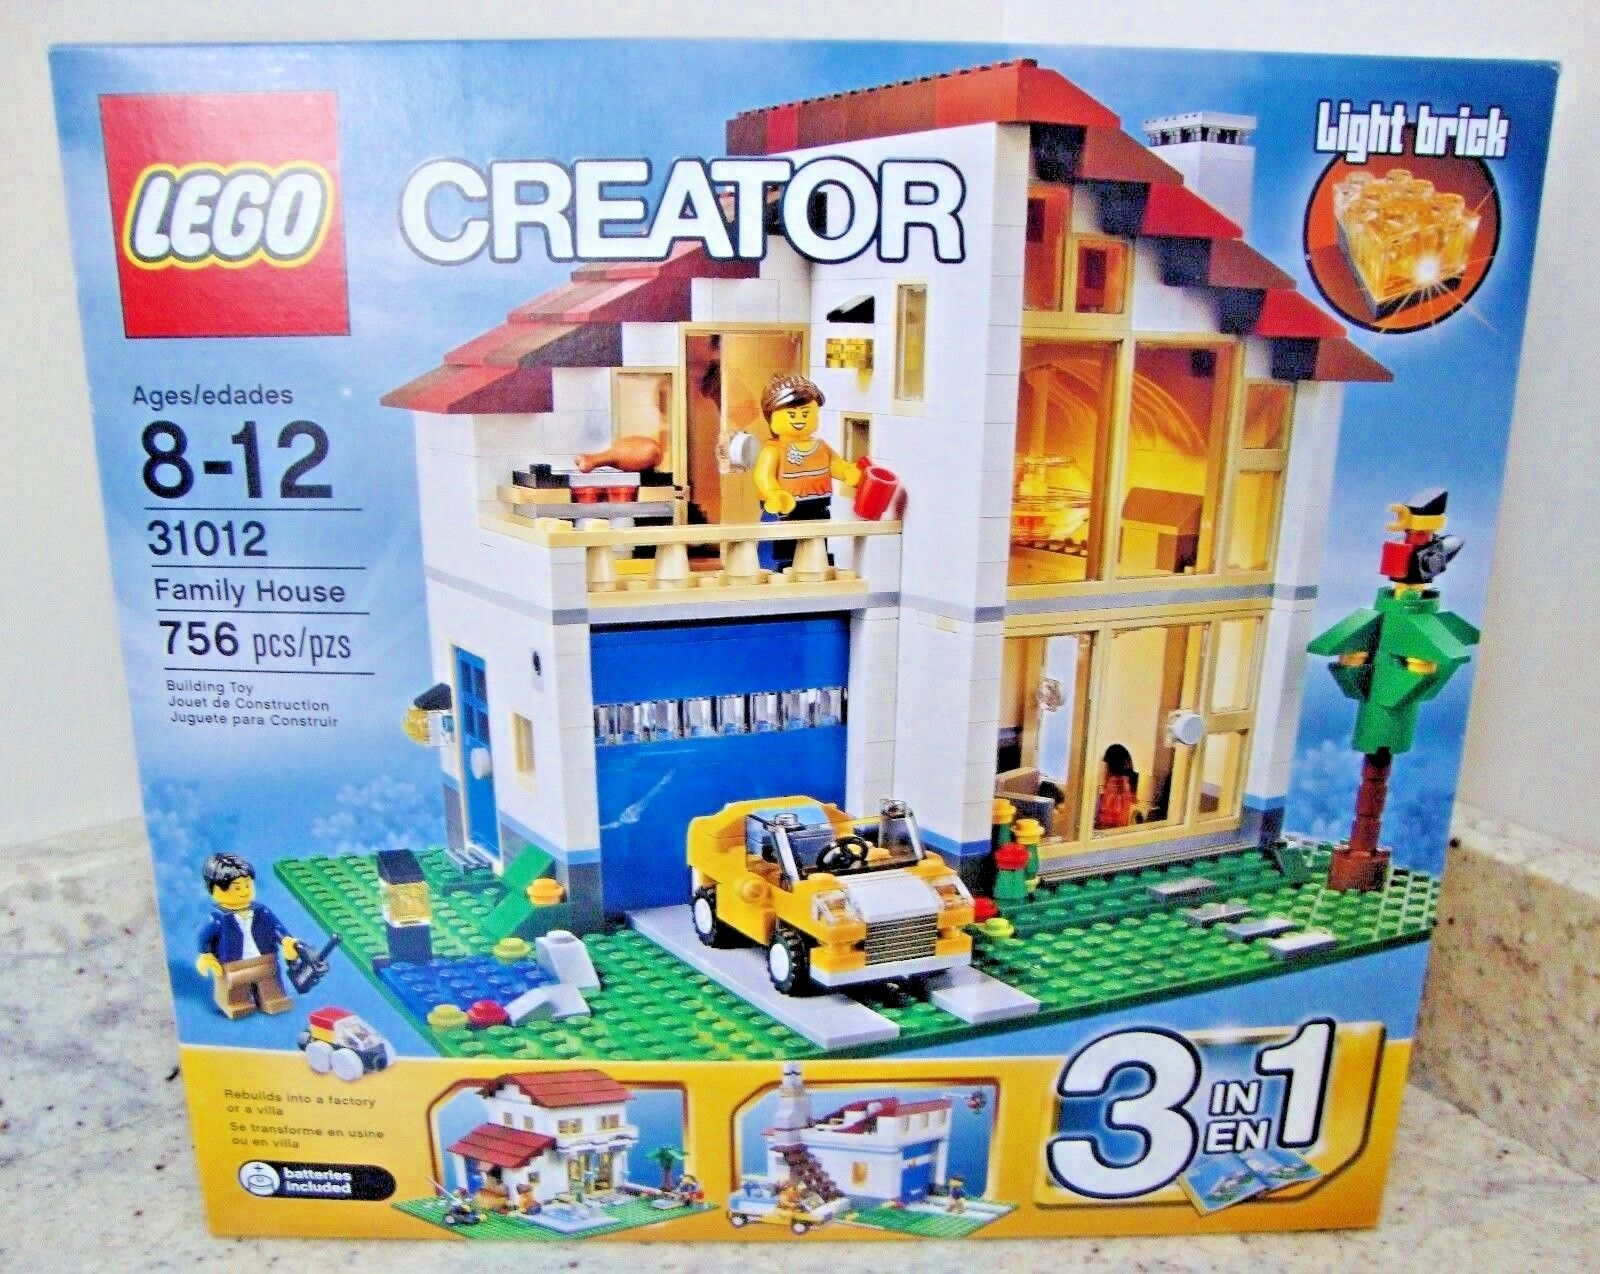 LEGO CREATOR CREATOR CREATOR FAMILY HOUSE VILLA 3-in-1 SET  31012- RETIROT/Sealed Imperfect Box 56ac5c